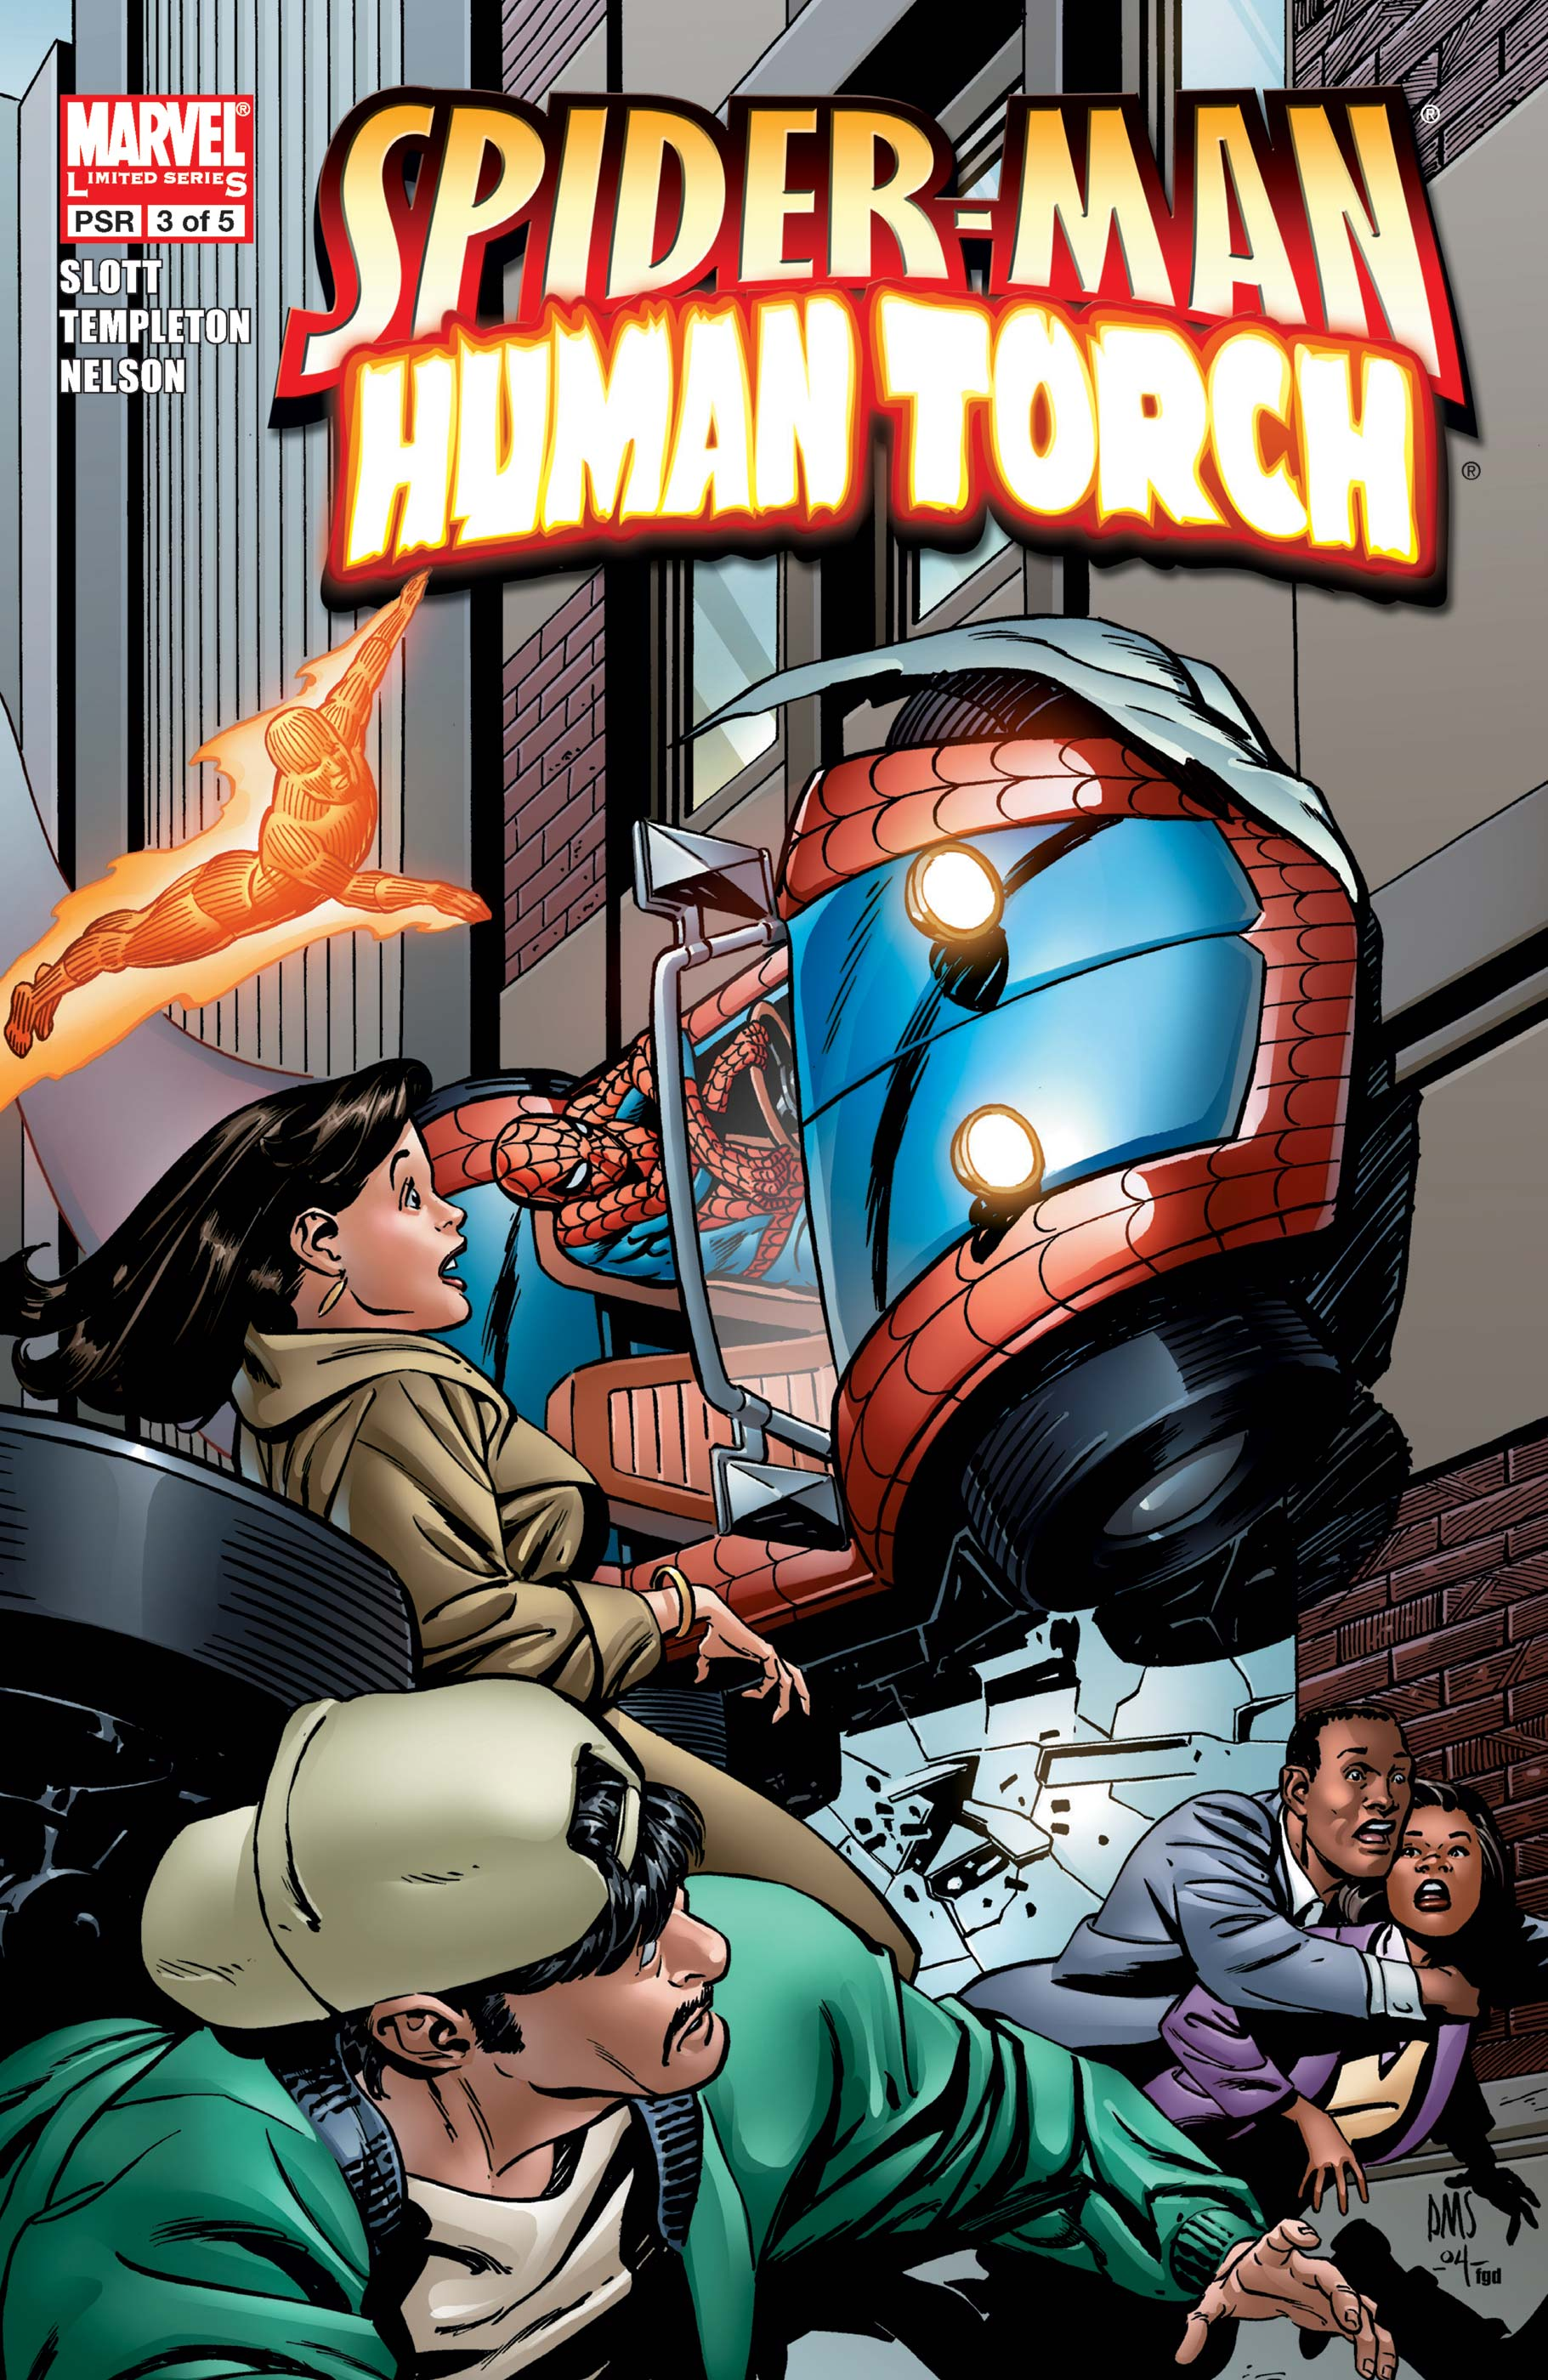 Spider-Man/Human Torch (2005) #3